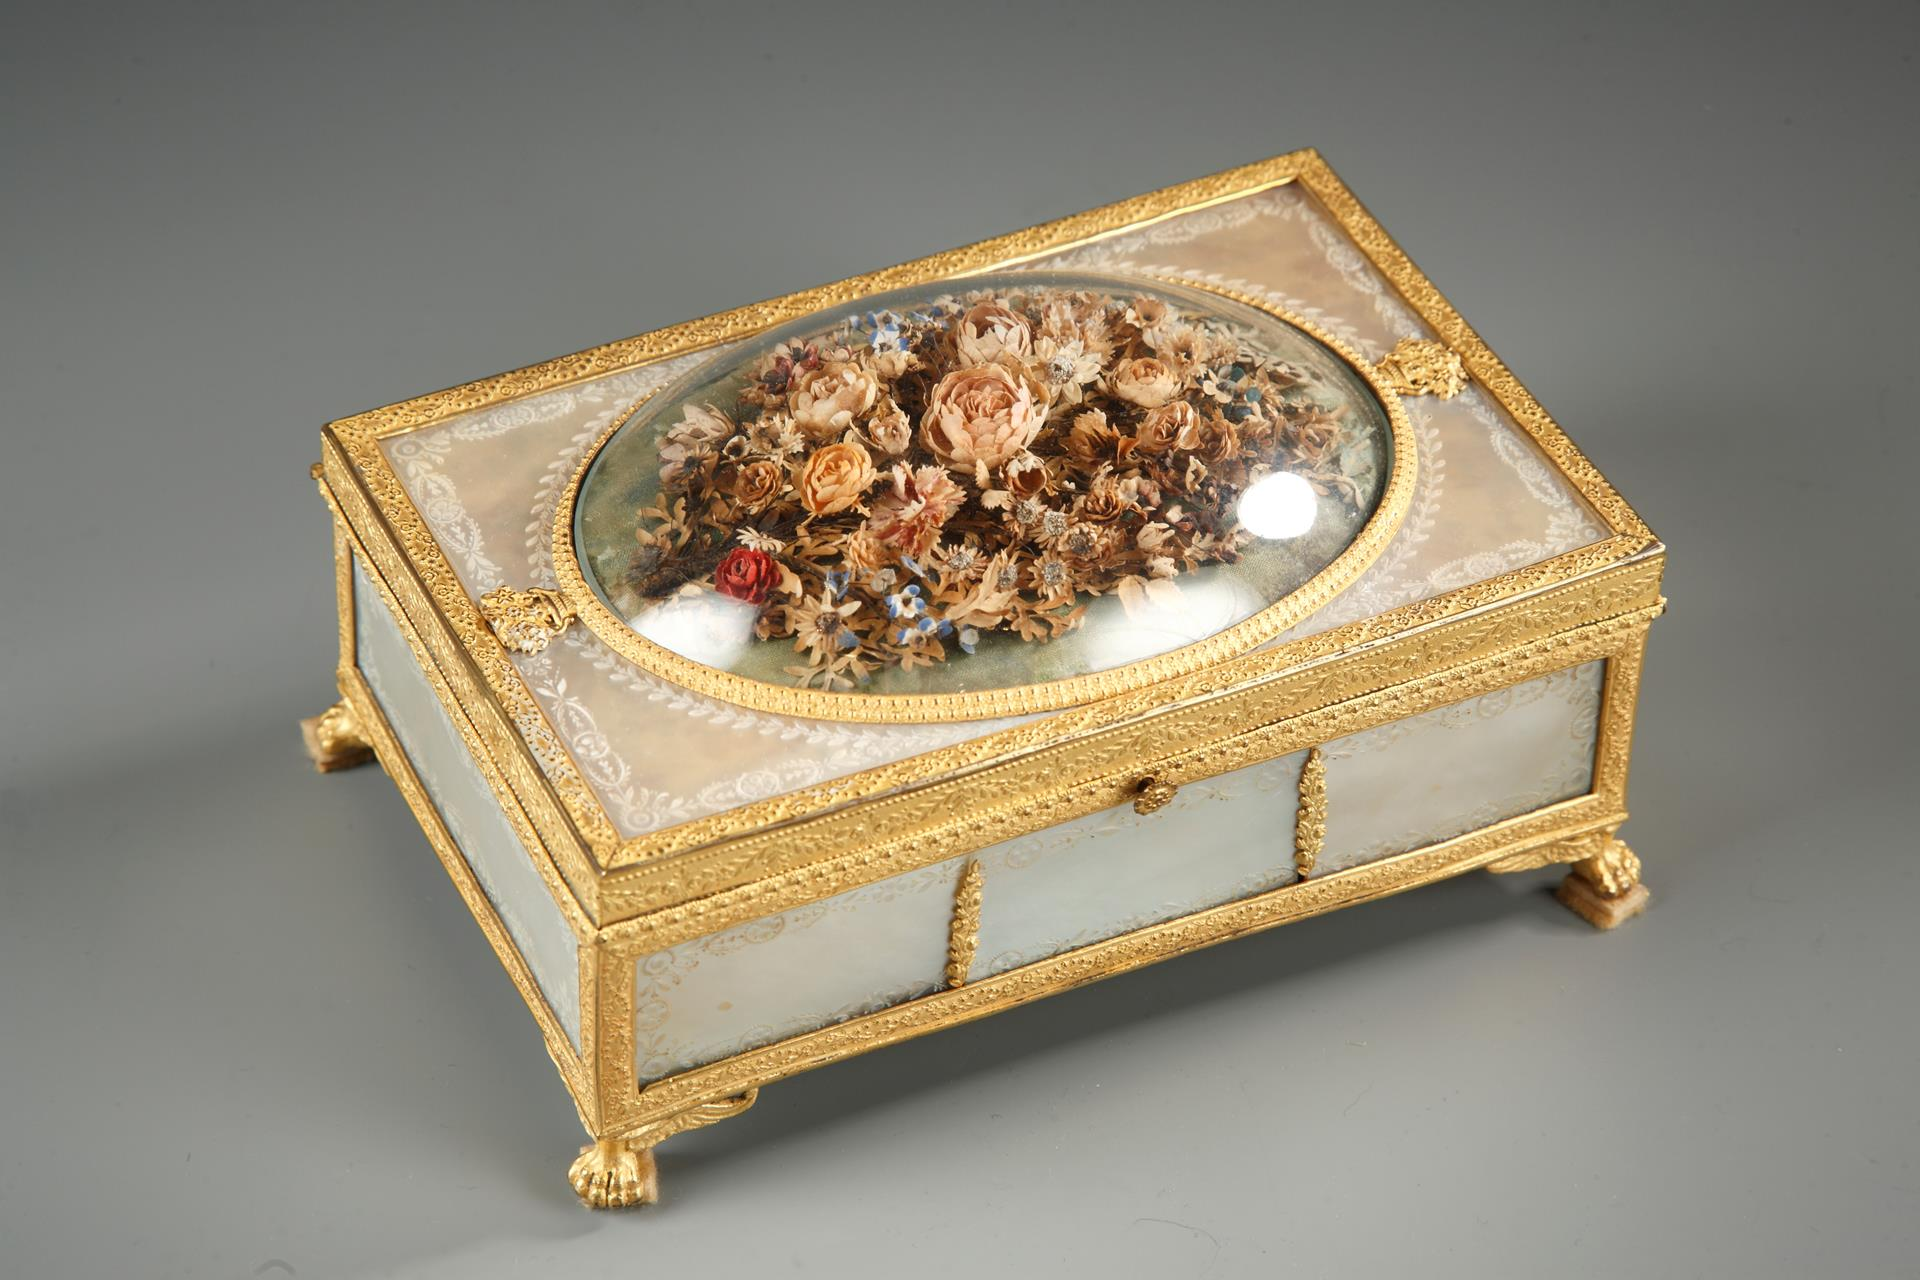 CHARLES X GILT BRONZE AND MOTHER-OF-PEARL BOX WITH FLOWERS.